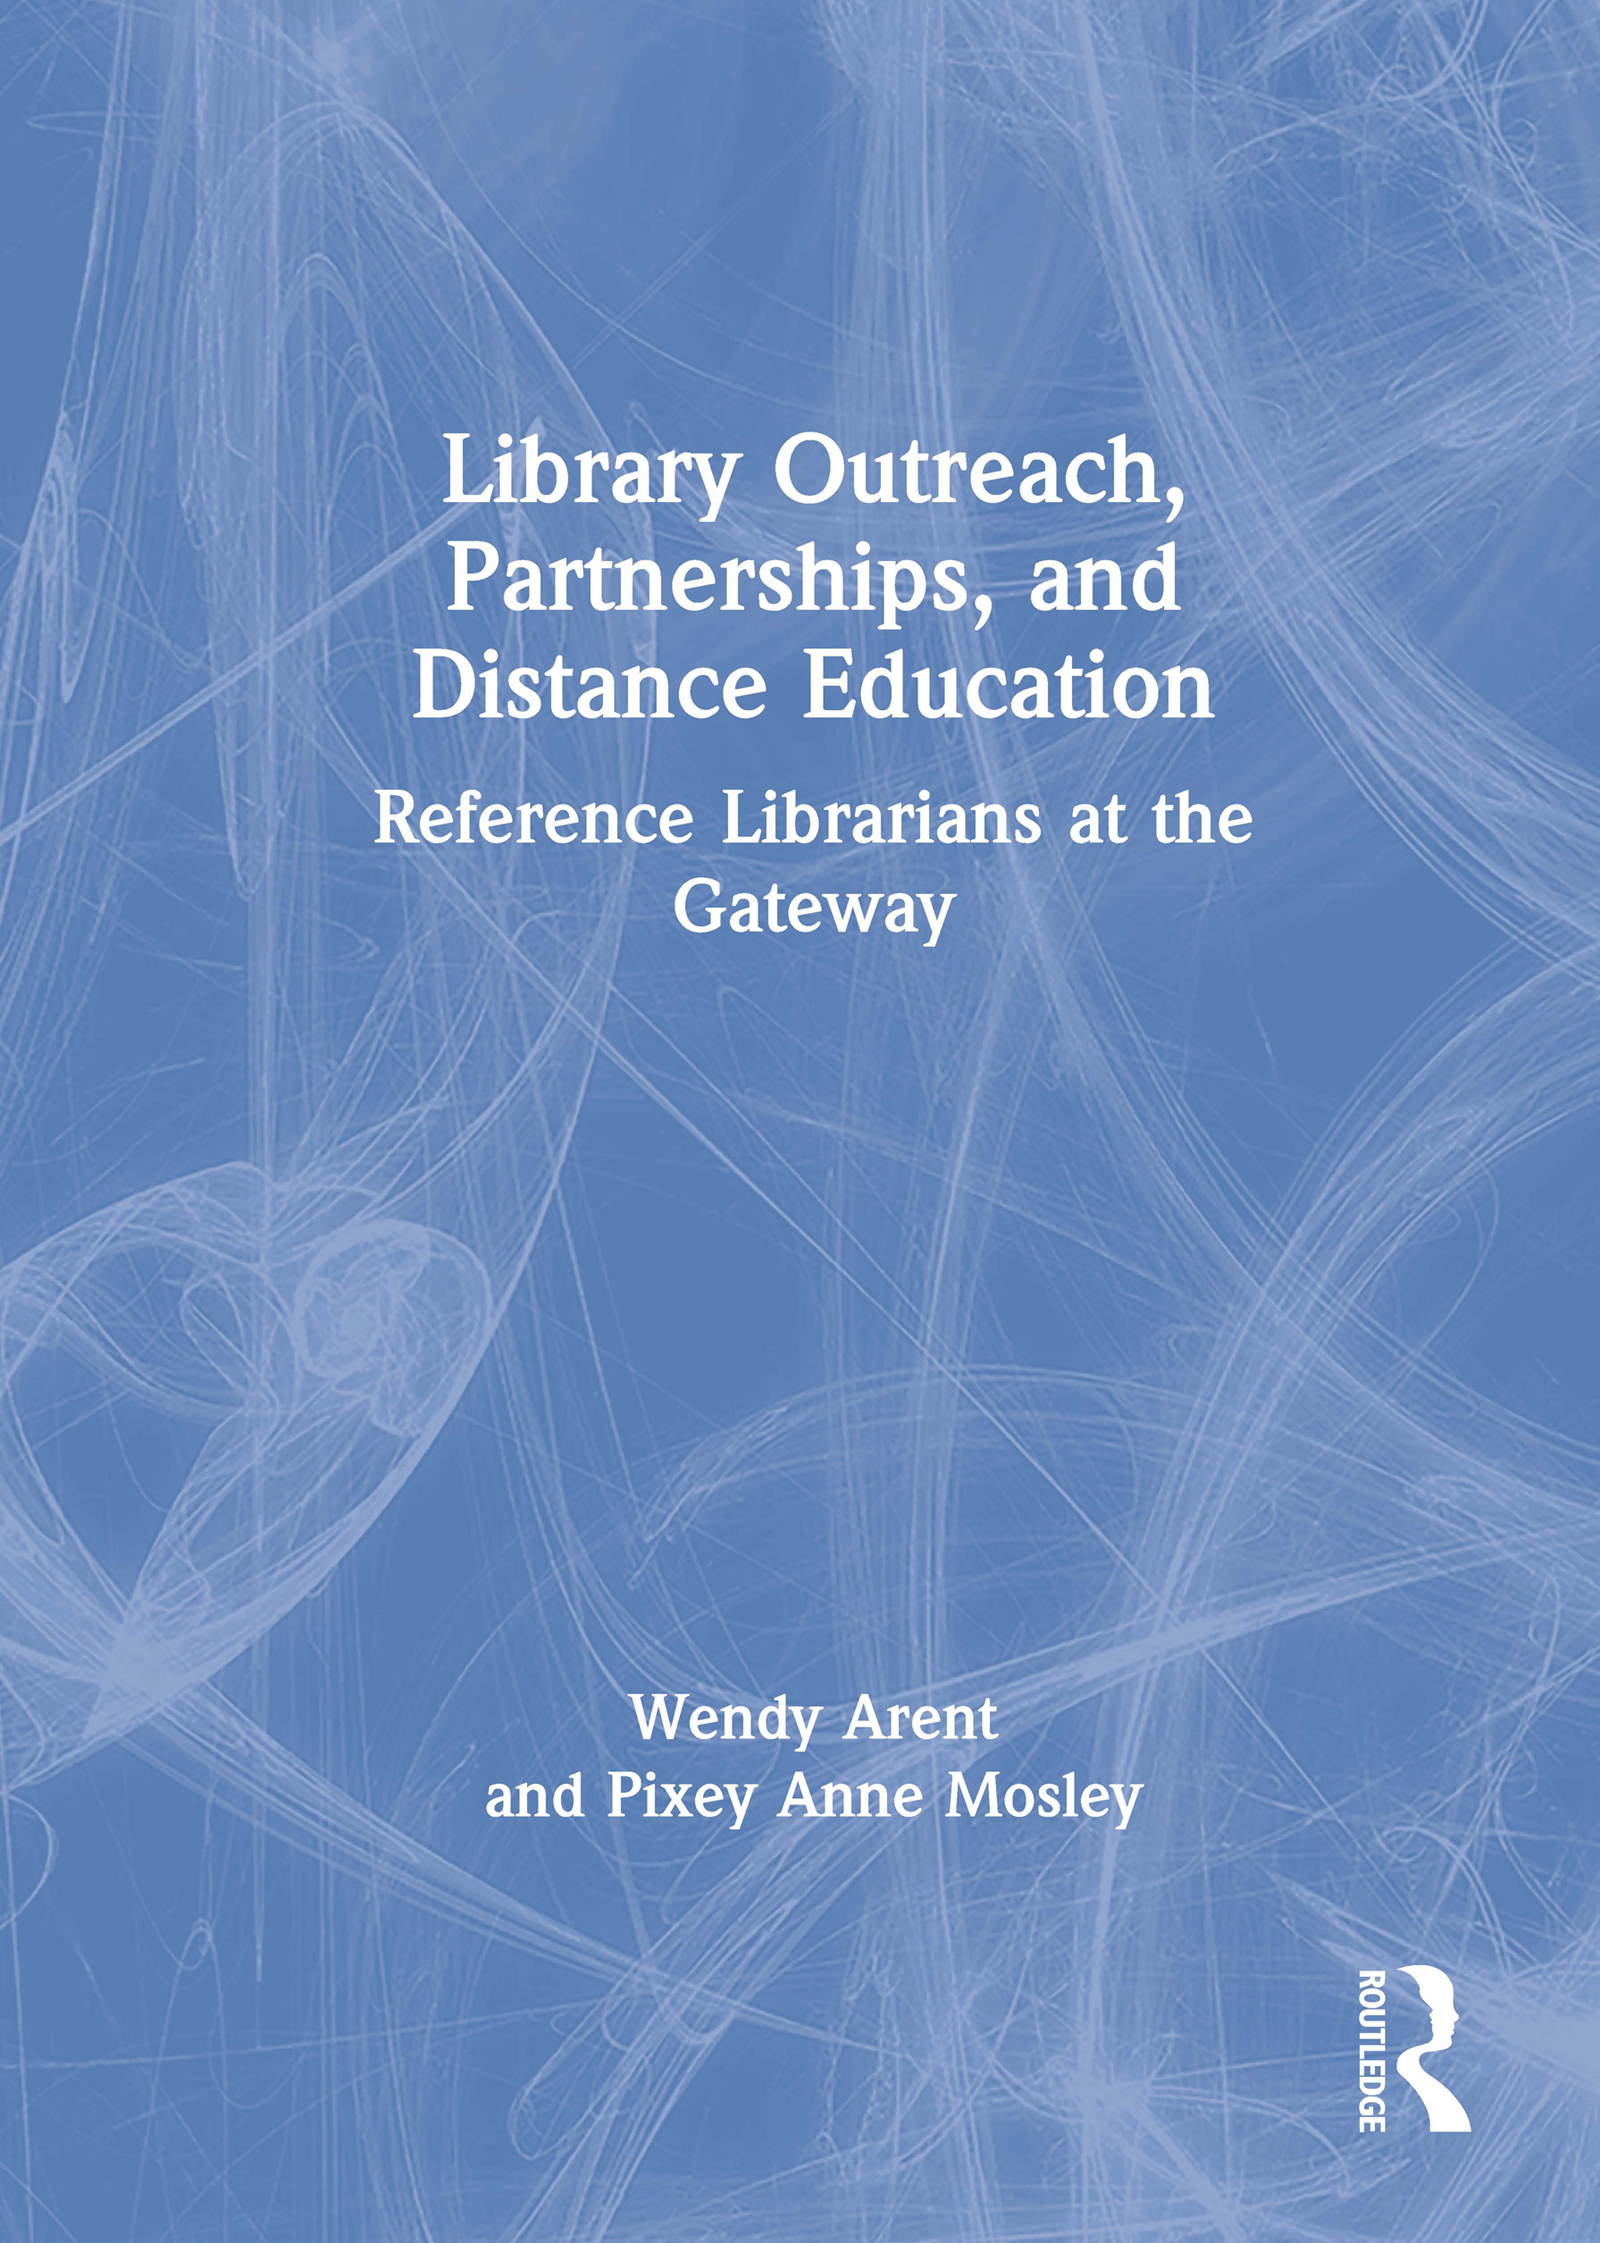 Library Outreach, Partnerships, and Distance Education: Reference Librarians at the Gateway, 1st Edition (Paperback) book cover